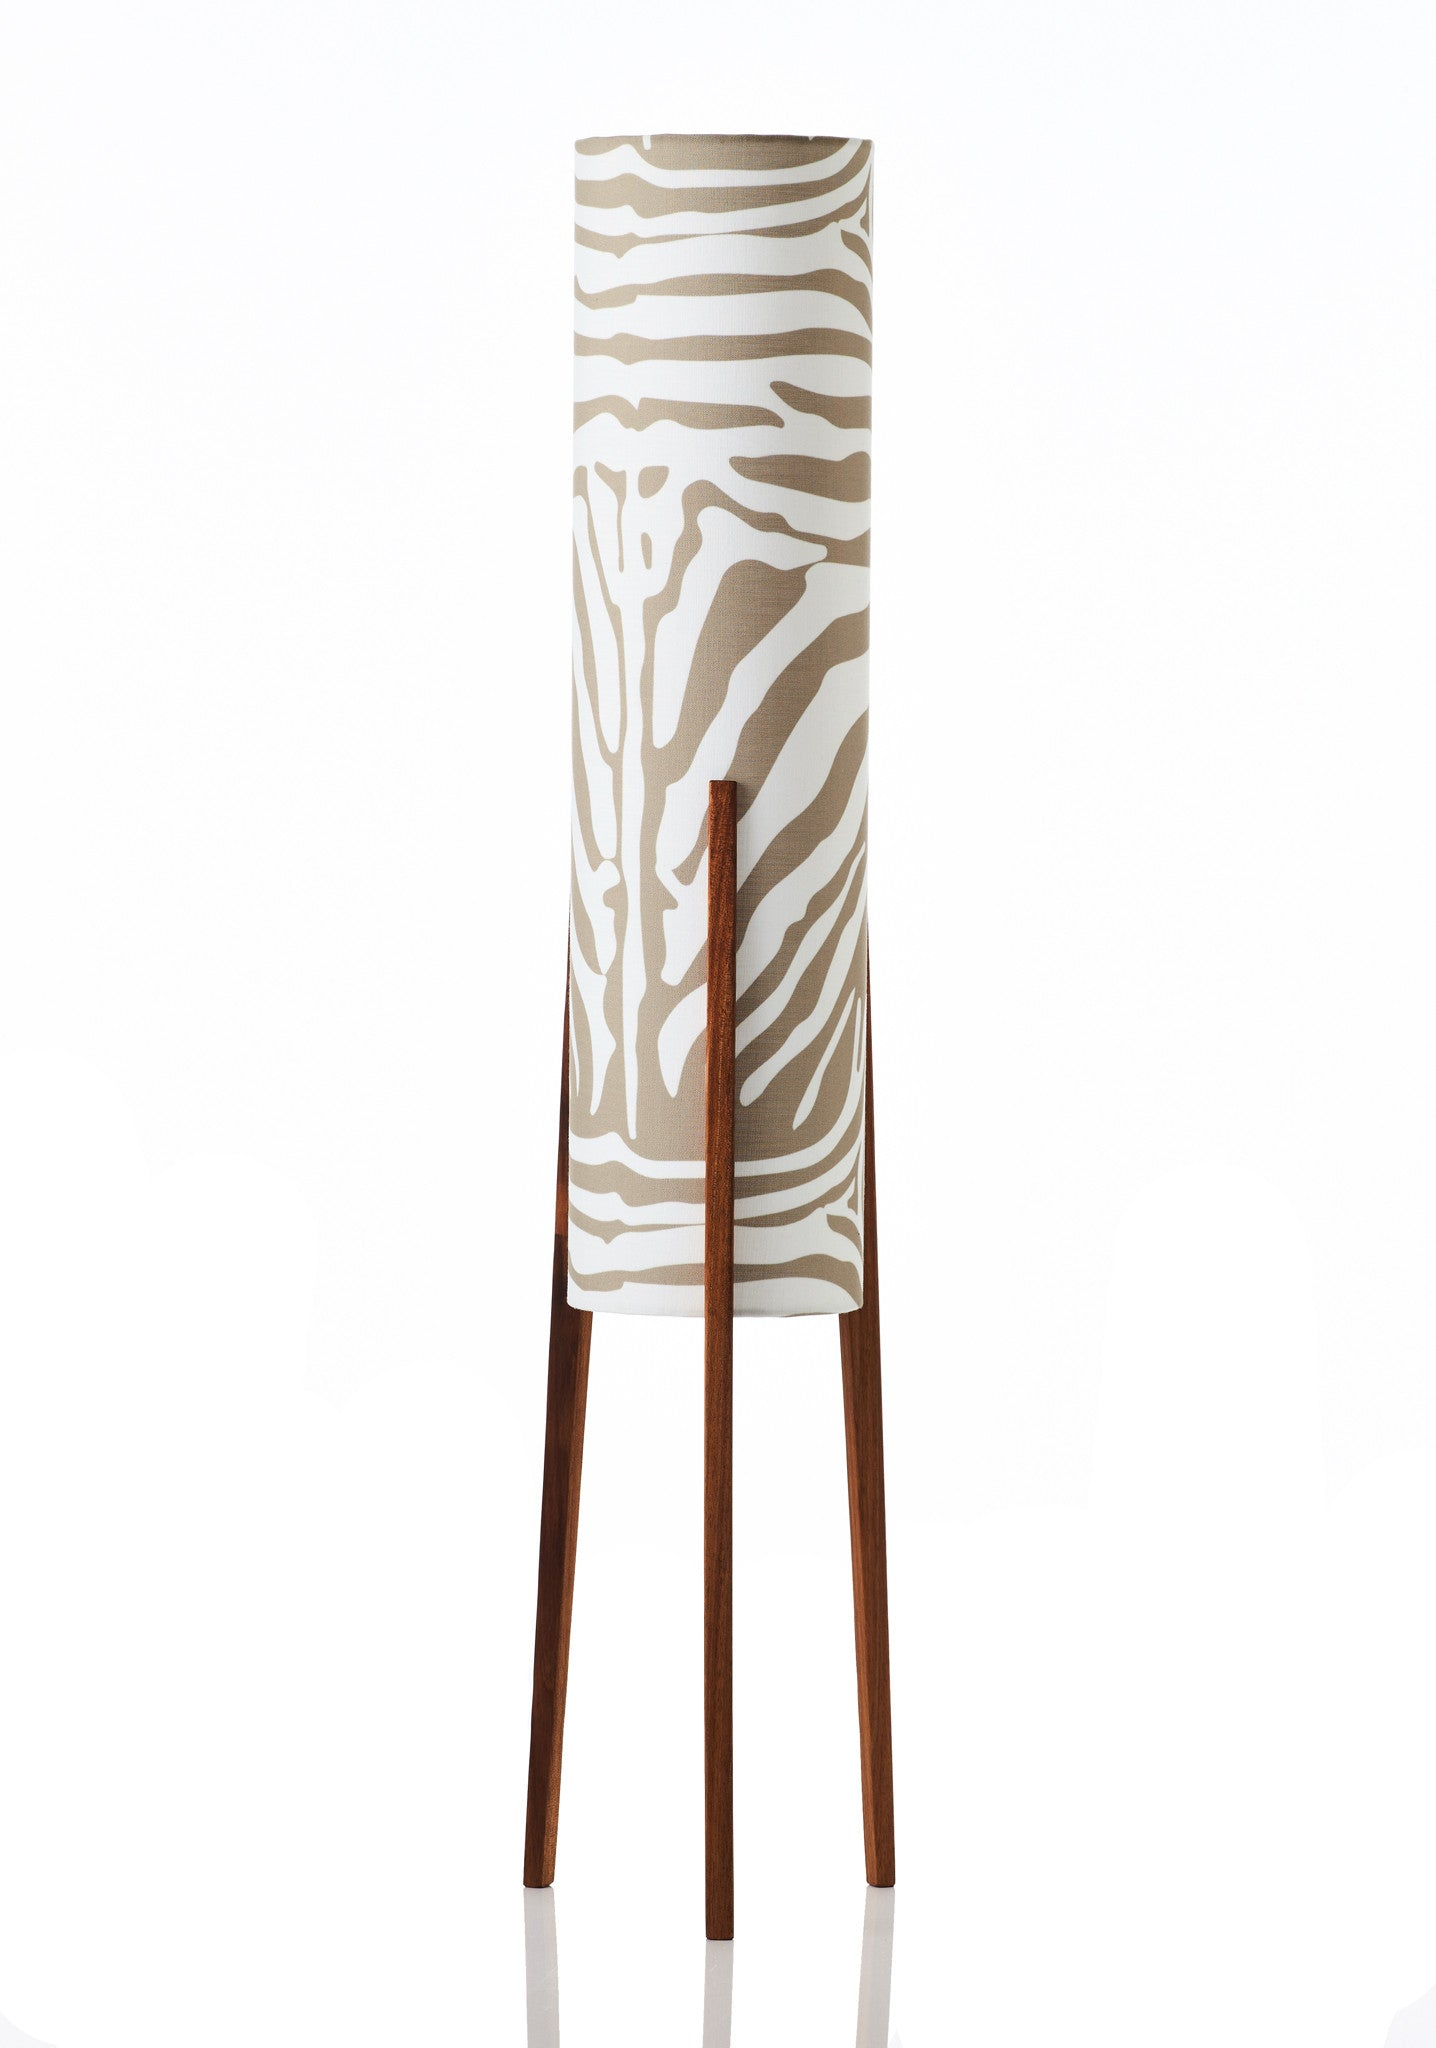 Rocket Floor Lamp Medium - Wild Dagger Earth